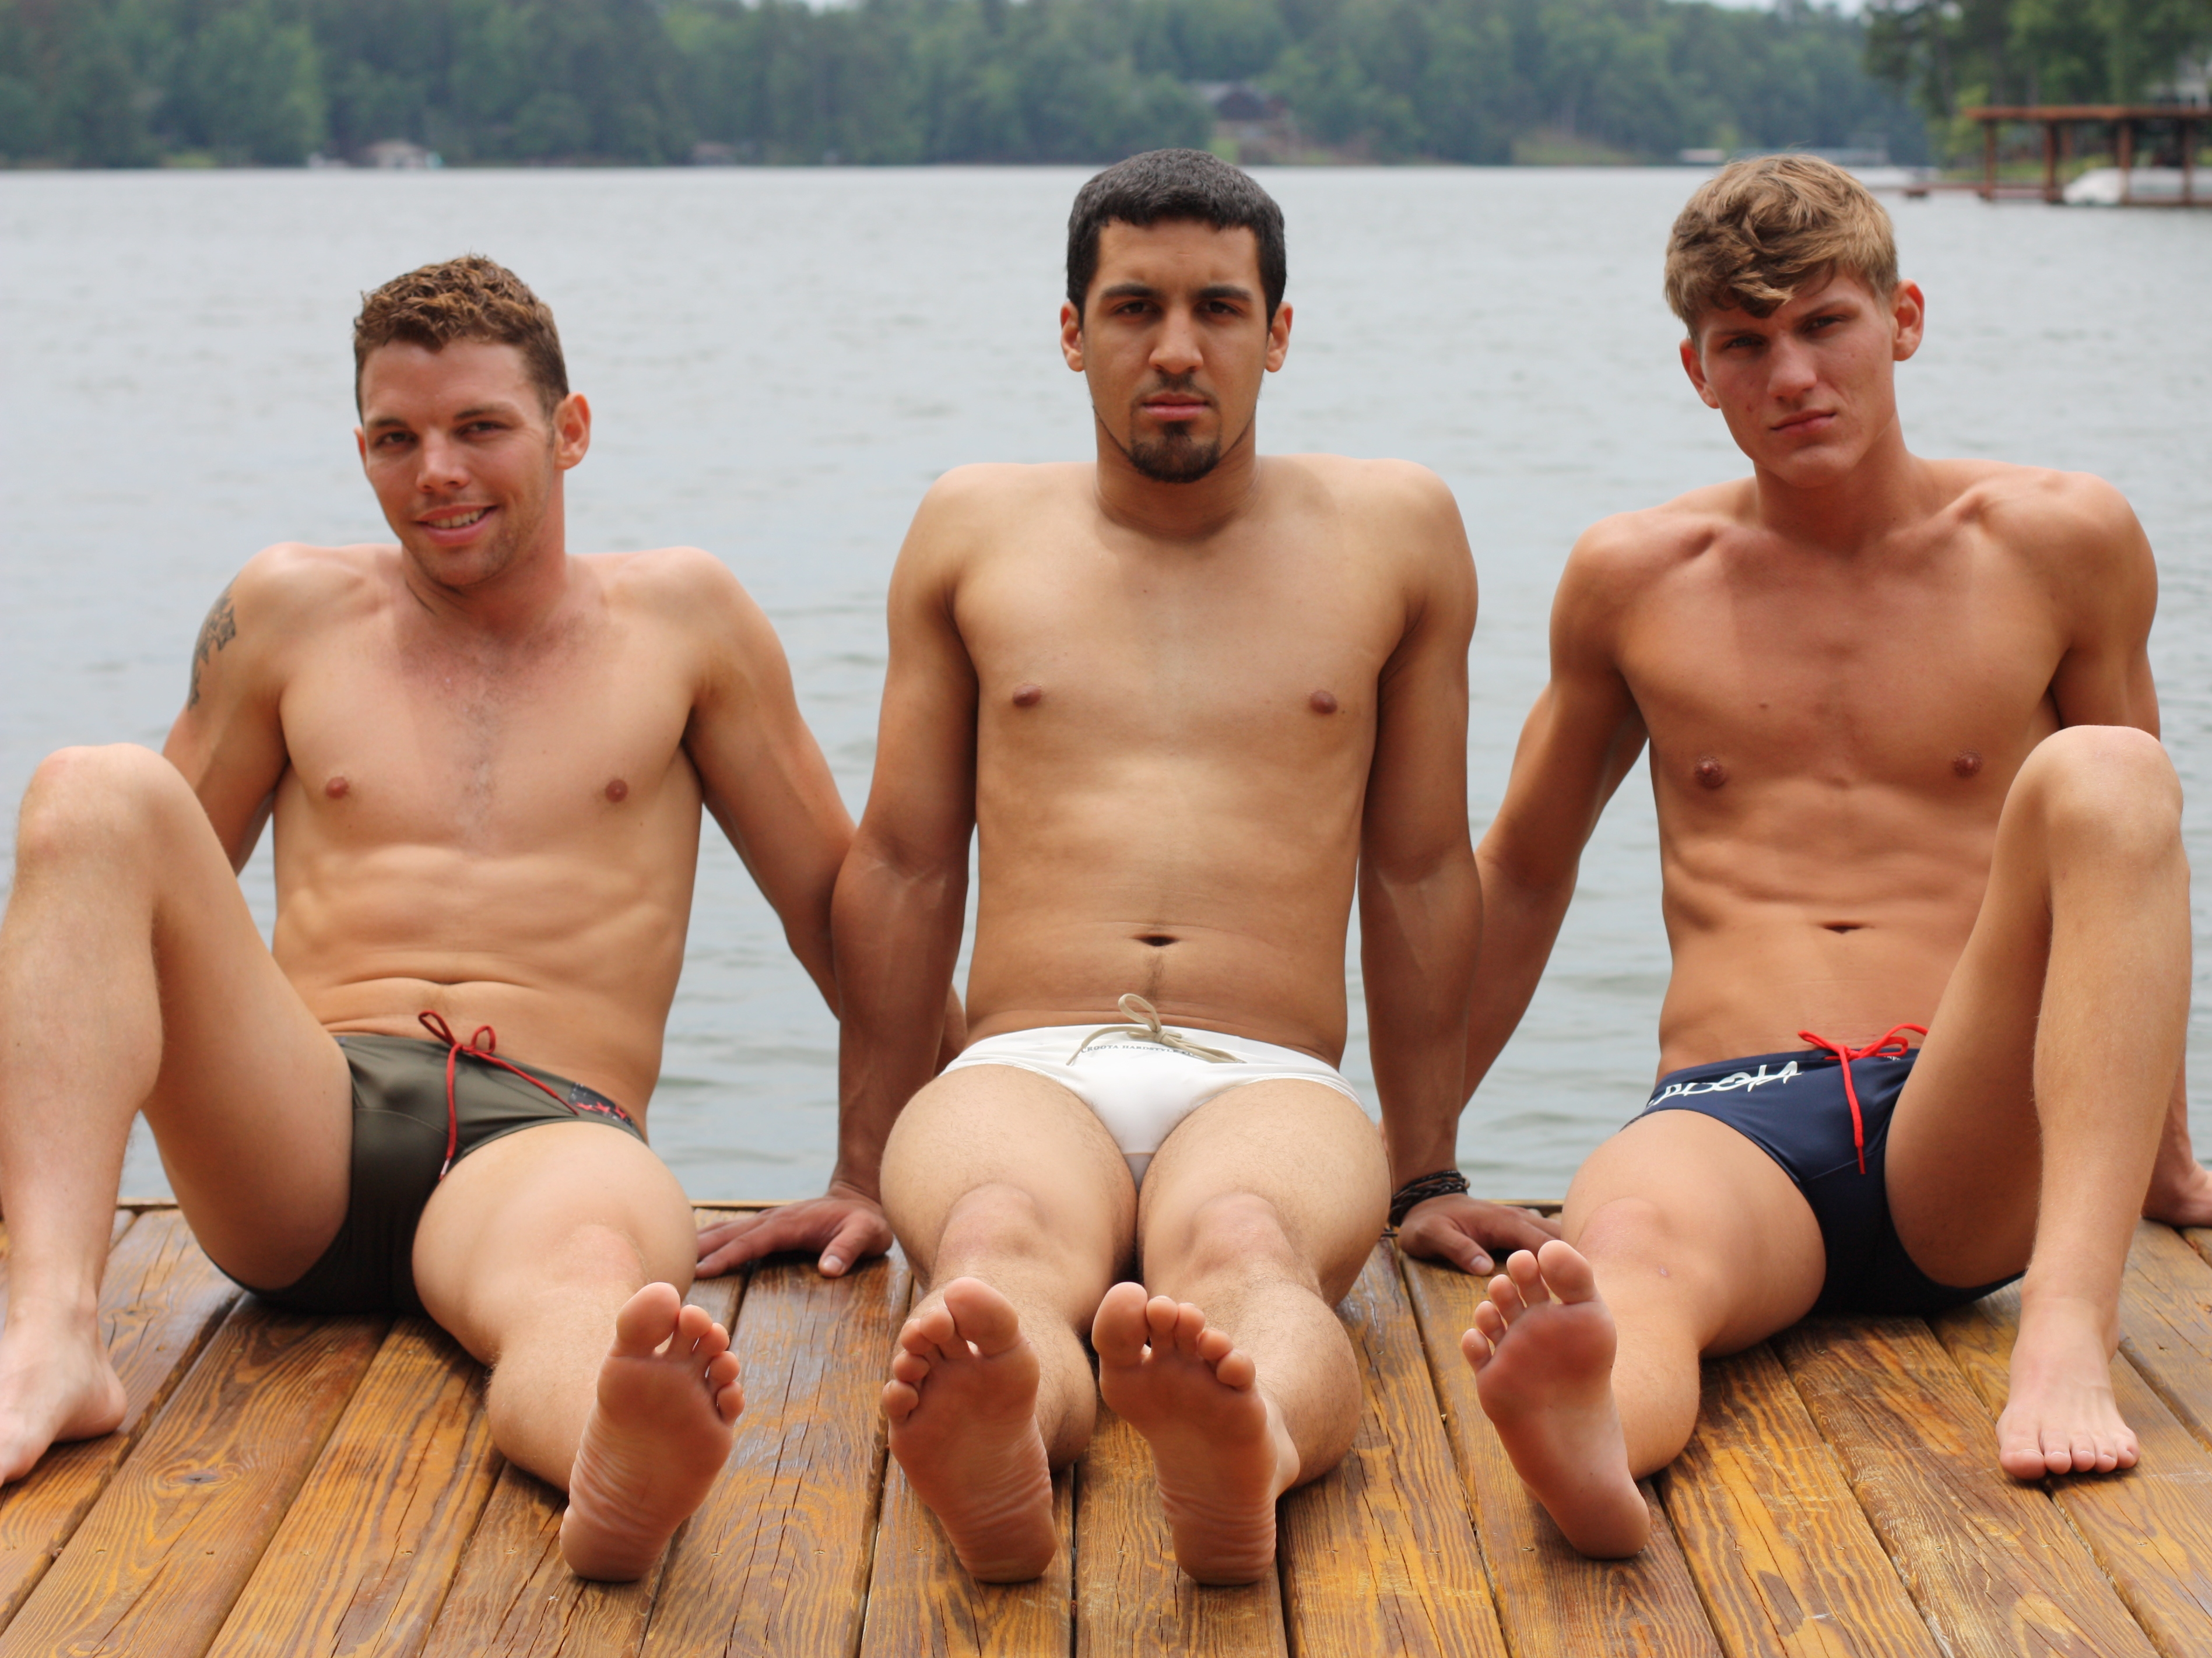 Real Guys In Underwear, we need your help